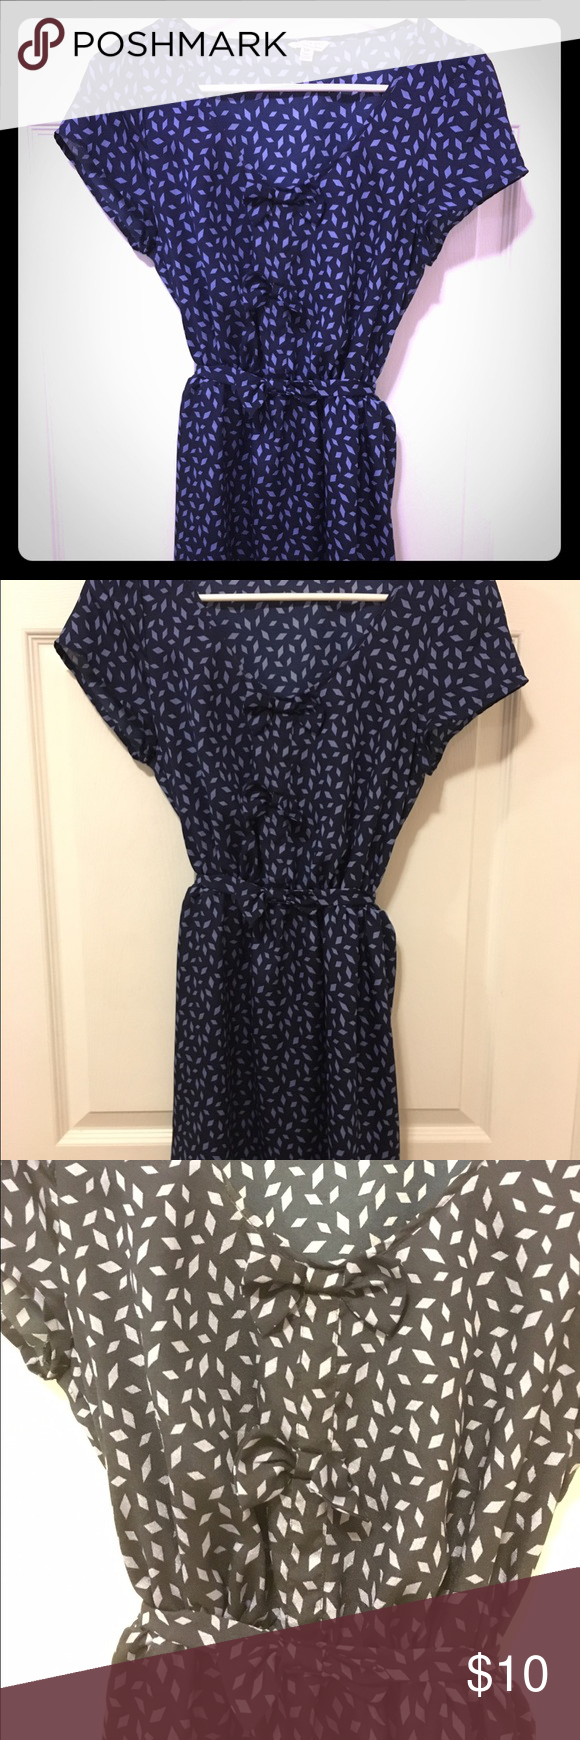 Dark blue day dress I Love H81 by Forever 21 short sleeved dress with three bows  down the front with a cinched waist. Hits a few inches above the knee. Beautiful scoop neckline looks great for a casual date! Dark blue with light blue diamond design. Barely worn. Forever 21 Dresses Mini